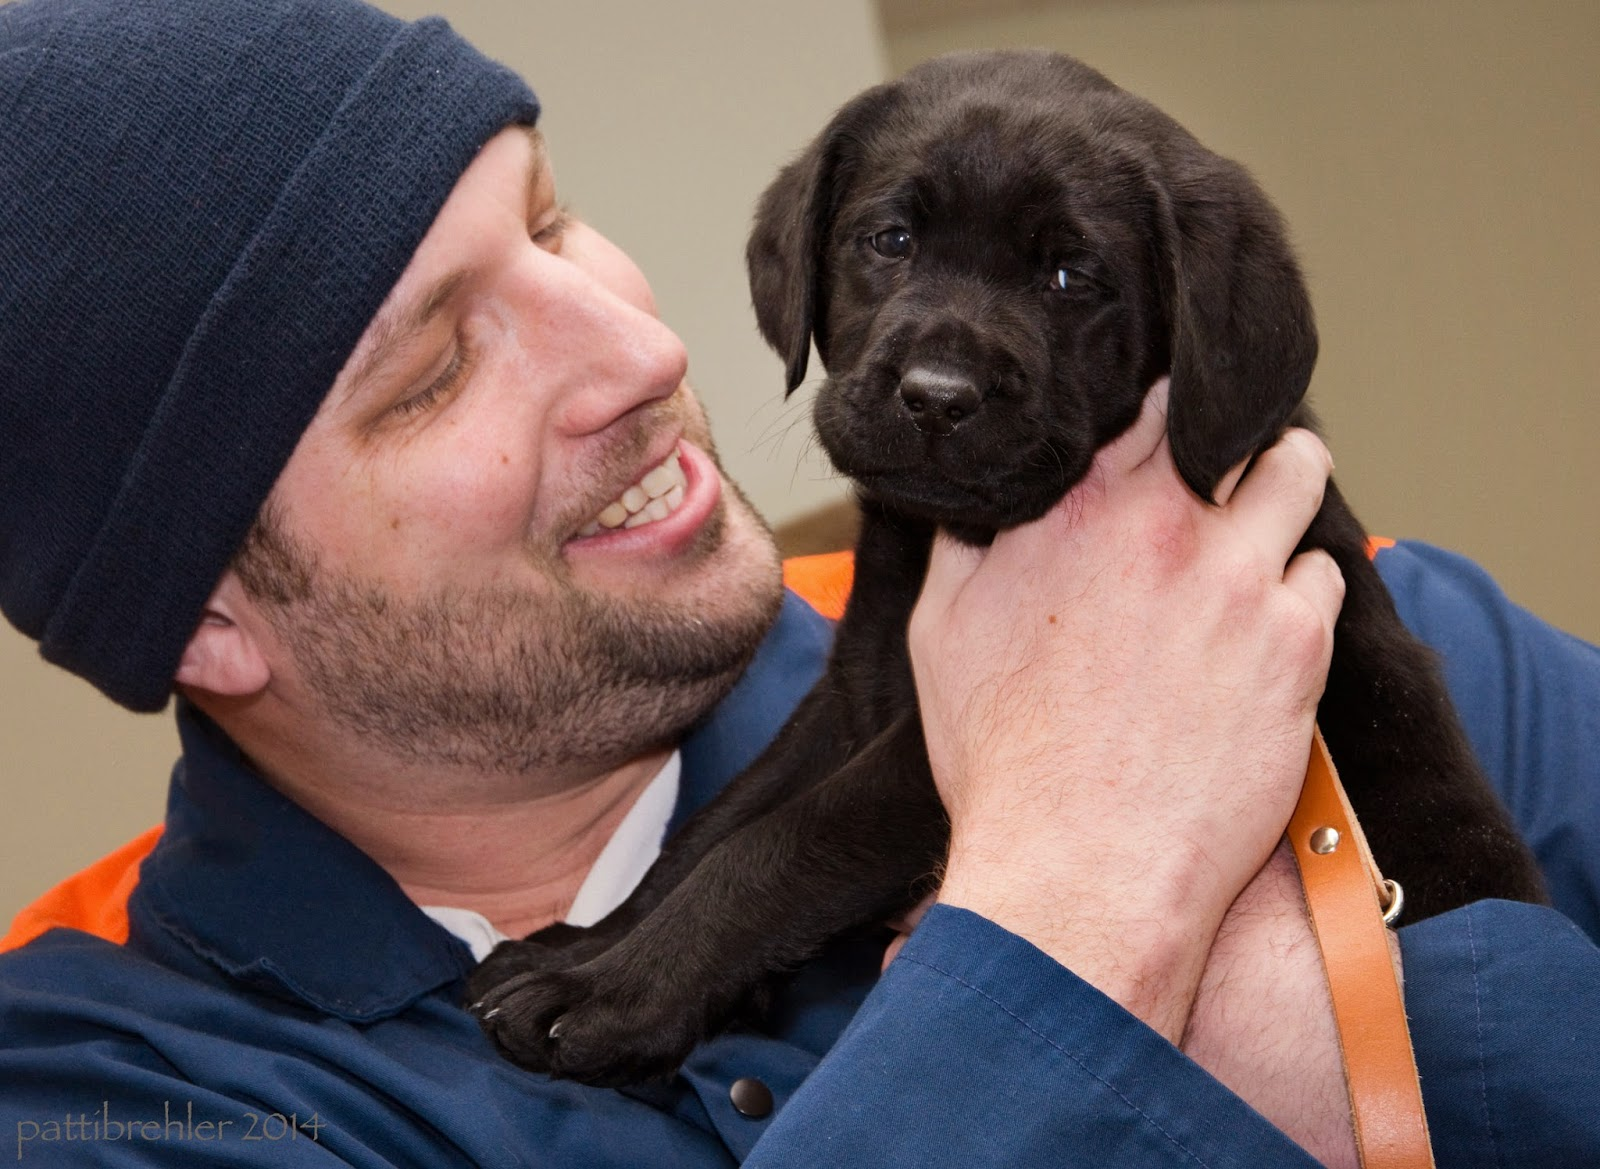 A close up shot of the man and the puppy. The puppy is looking sweetly at the camera and being held in the man's arms. The man's right hand is holding the puppy securely. The man is smiling and tooking at the puppy. The puppy's front paws are resting onthe man's upper chest.